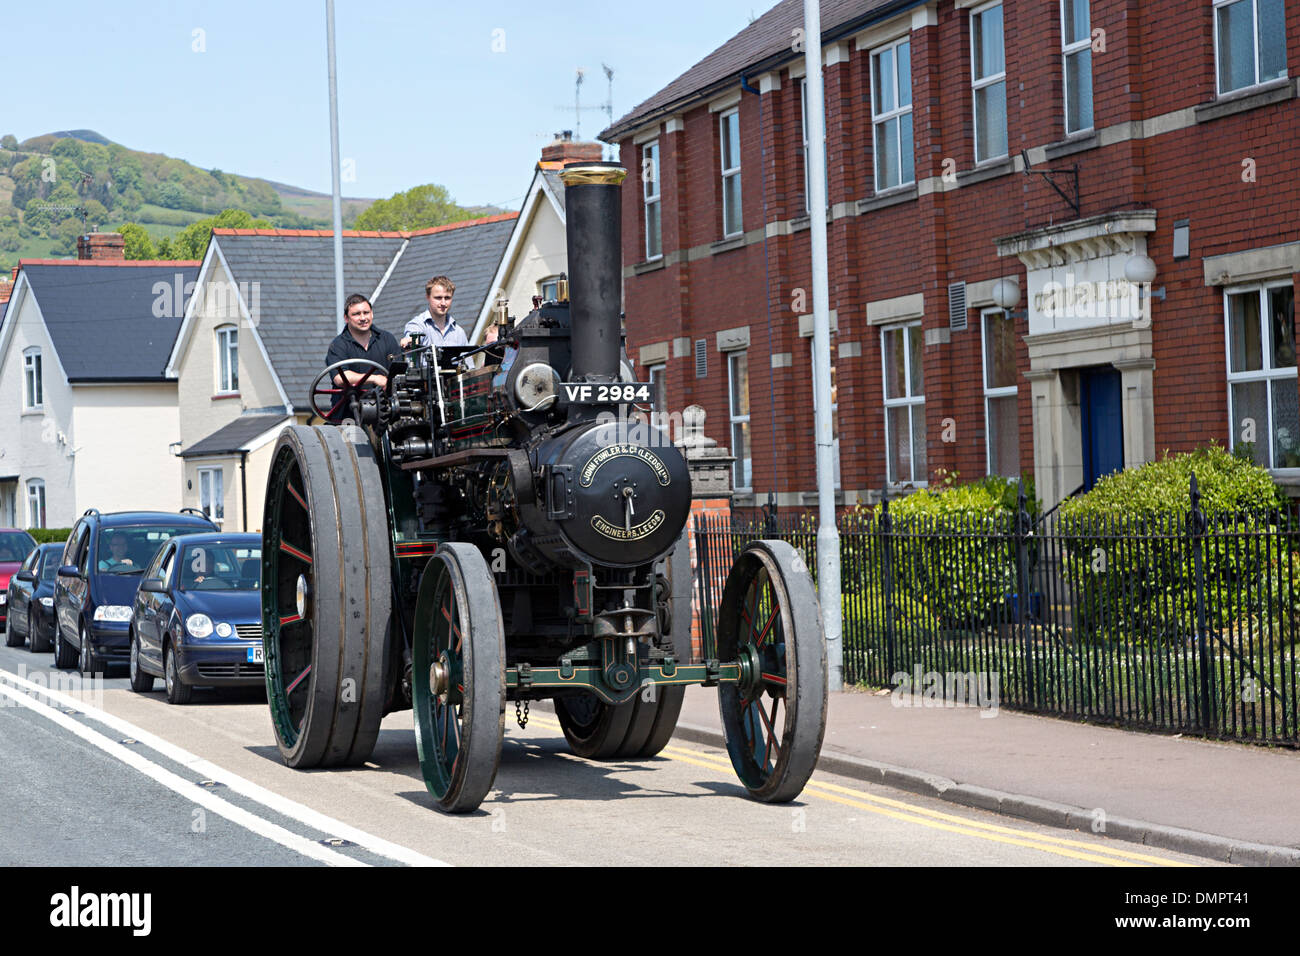 Steam Rally with steam engine on public road, Abergavenny, Wales, UK - Stock Image